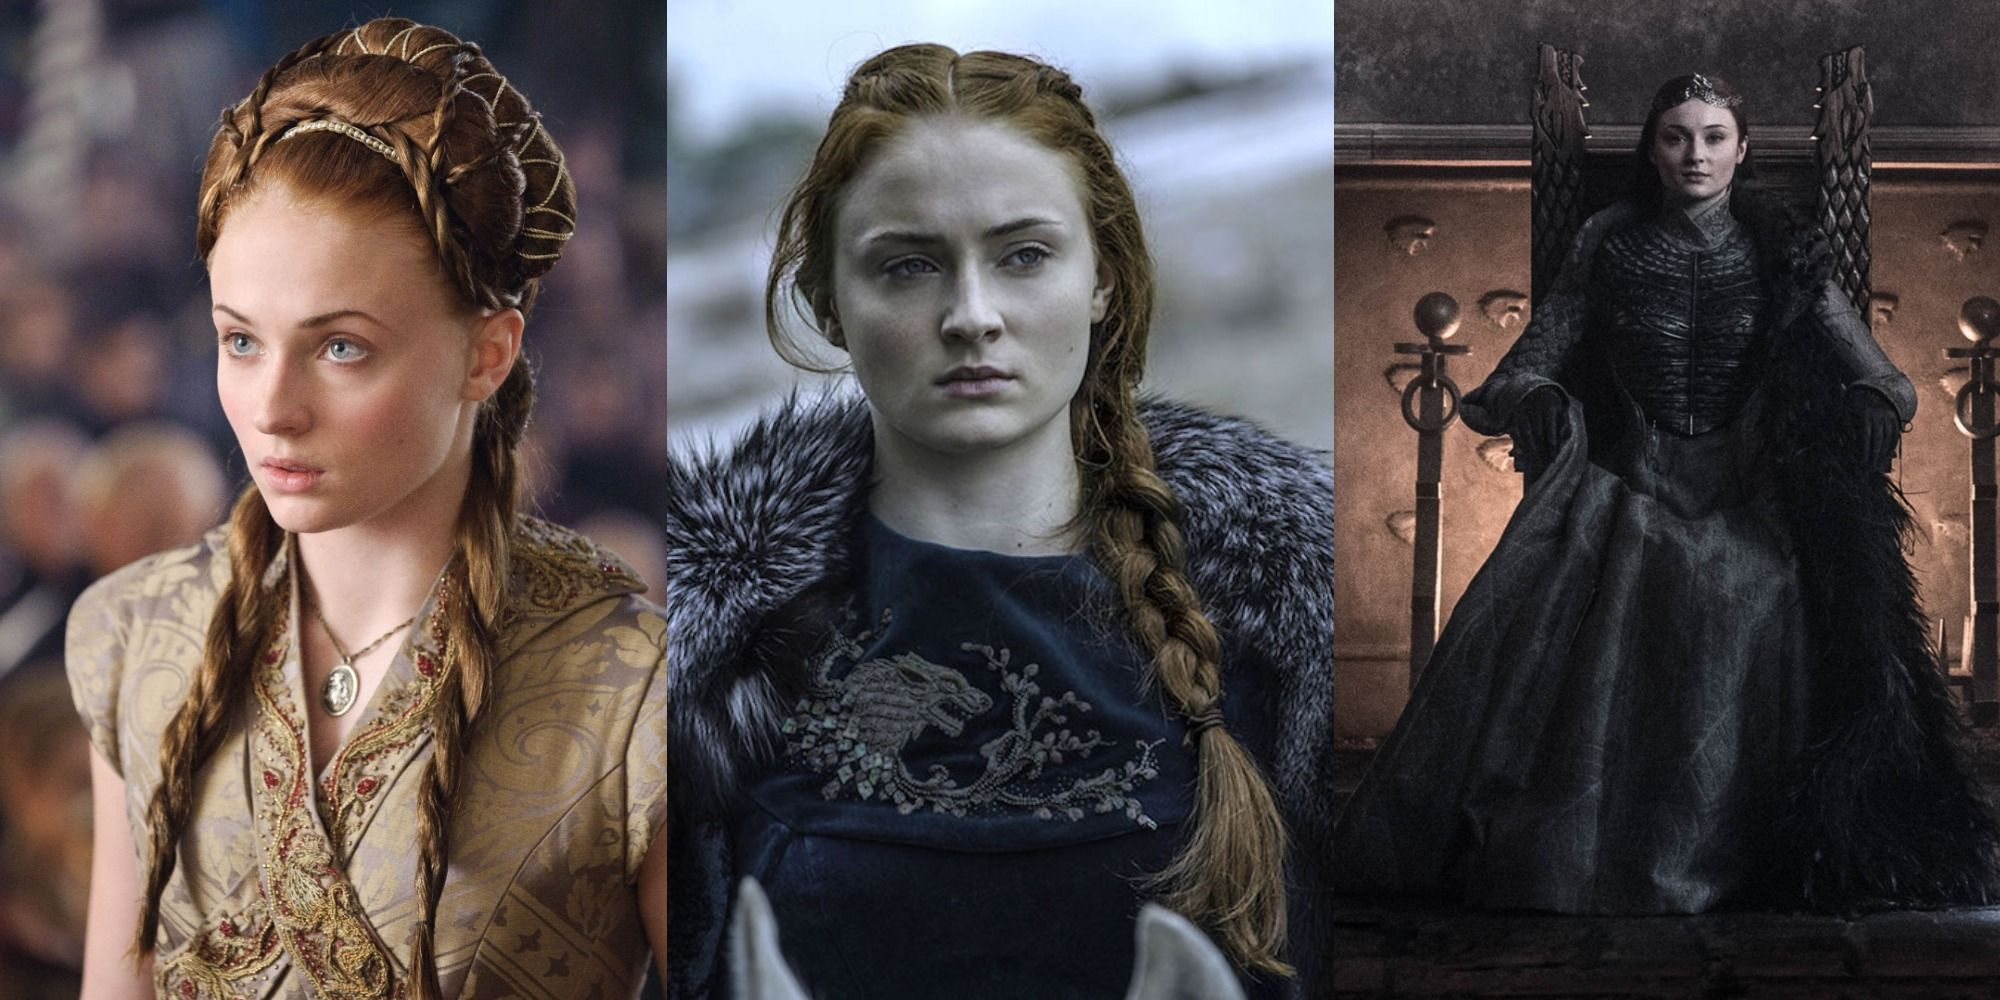 Game Of Thrones: Sansa's Slow Transformation Over The Years (In Pictures)